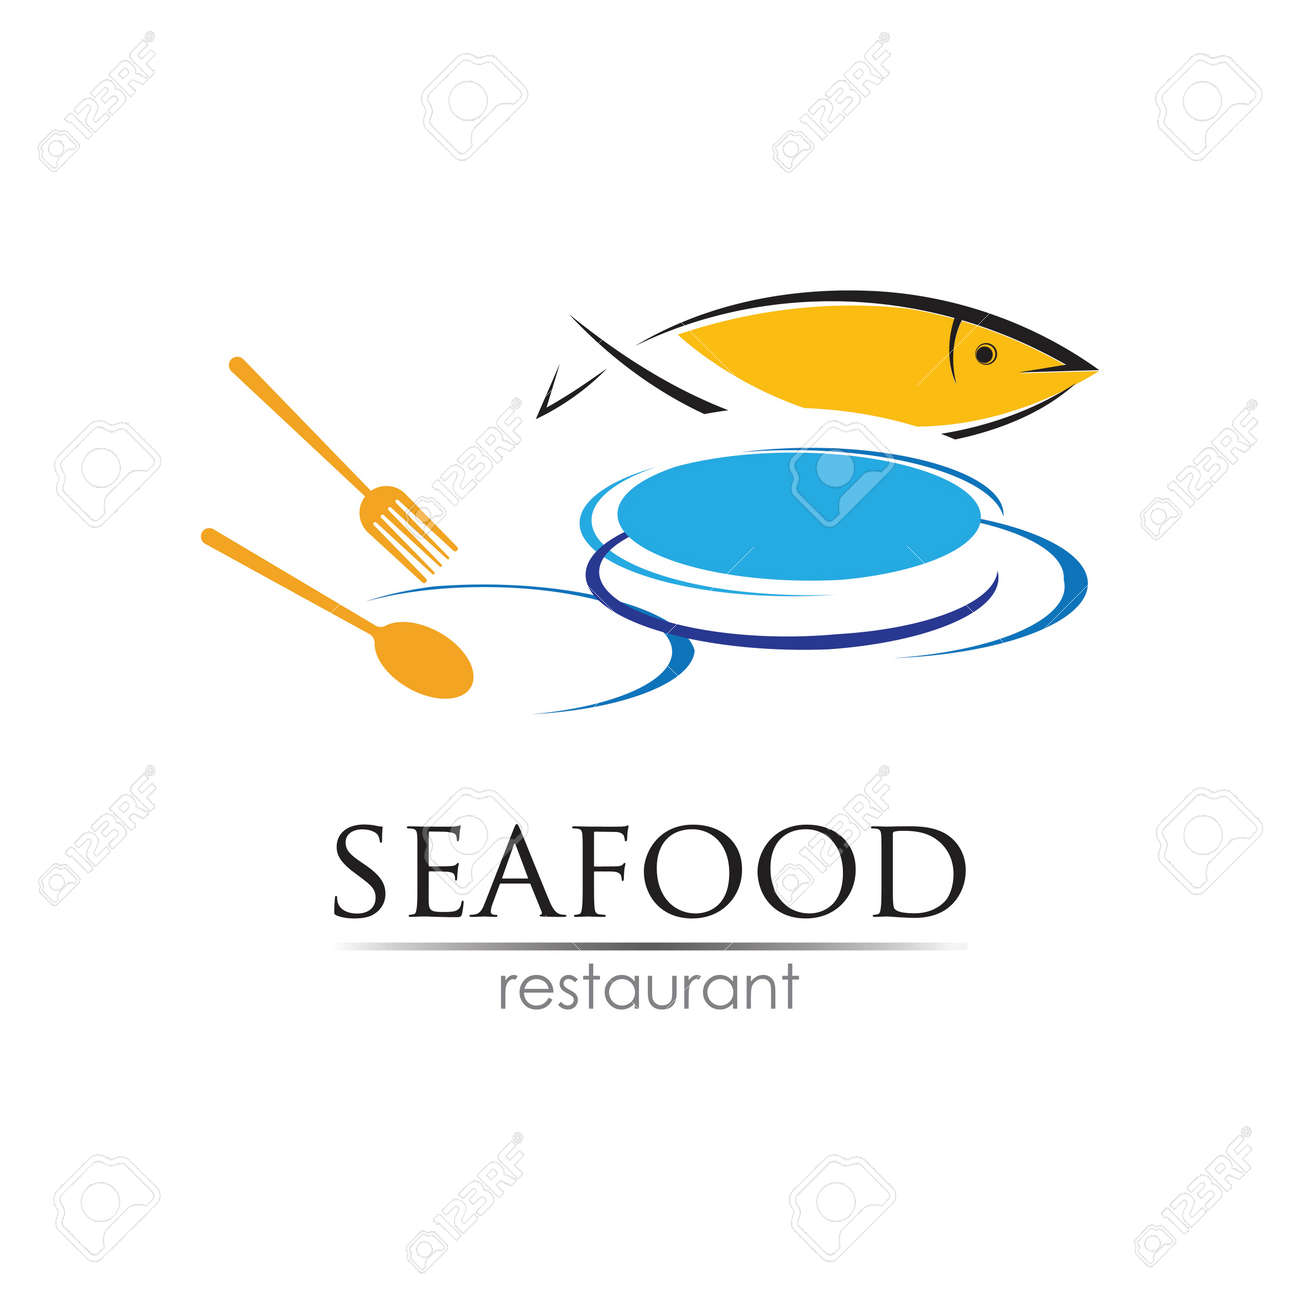 Seafood restaurant design. Fish, Food and Beverage concept. Vector template - 166651839